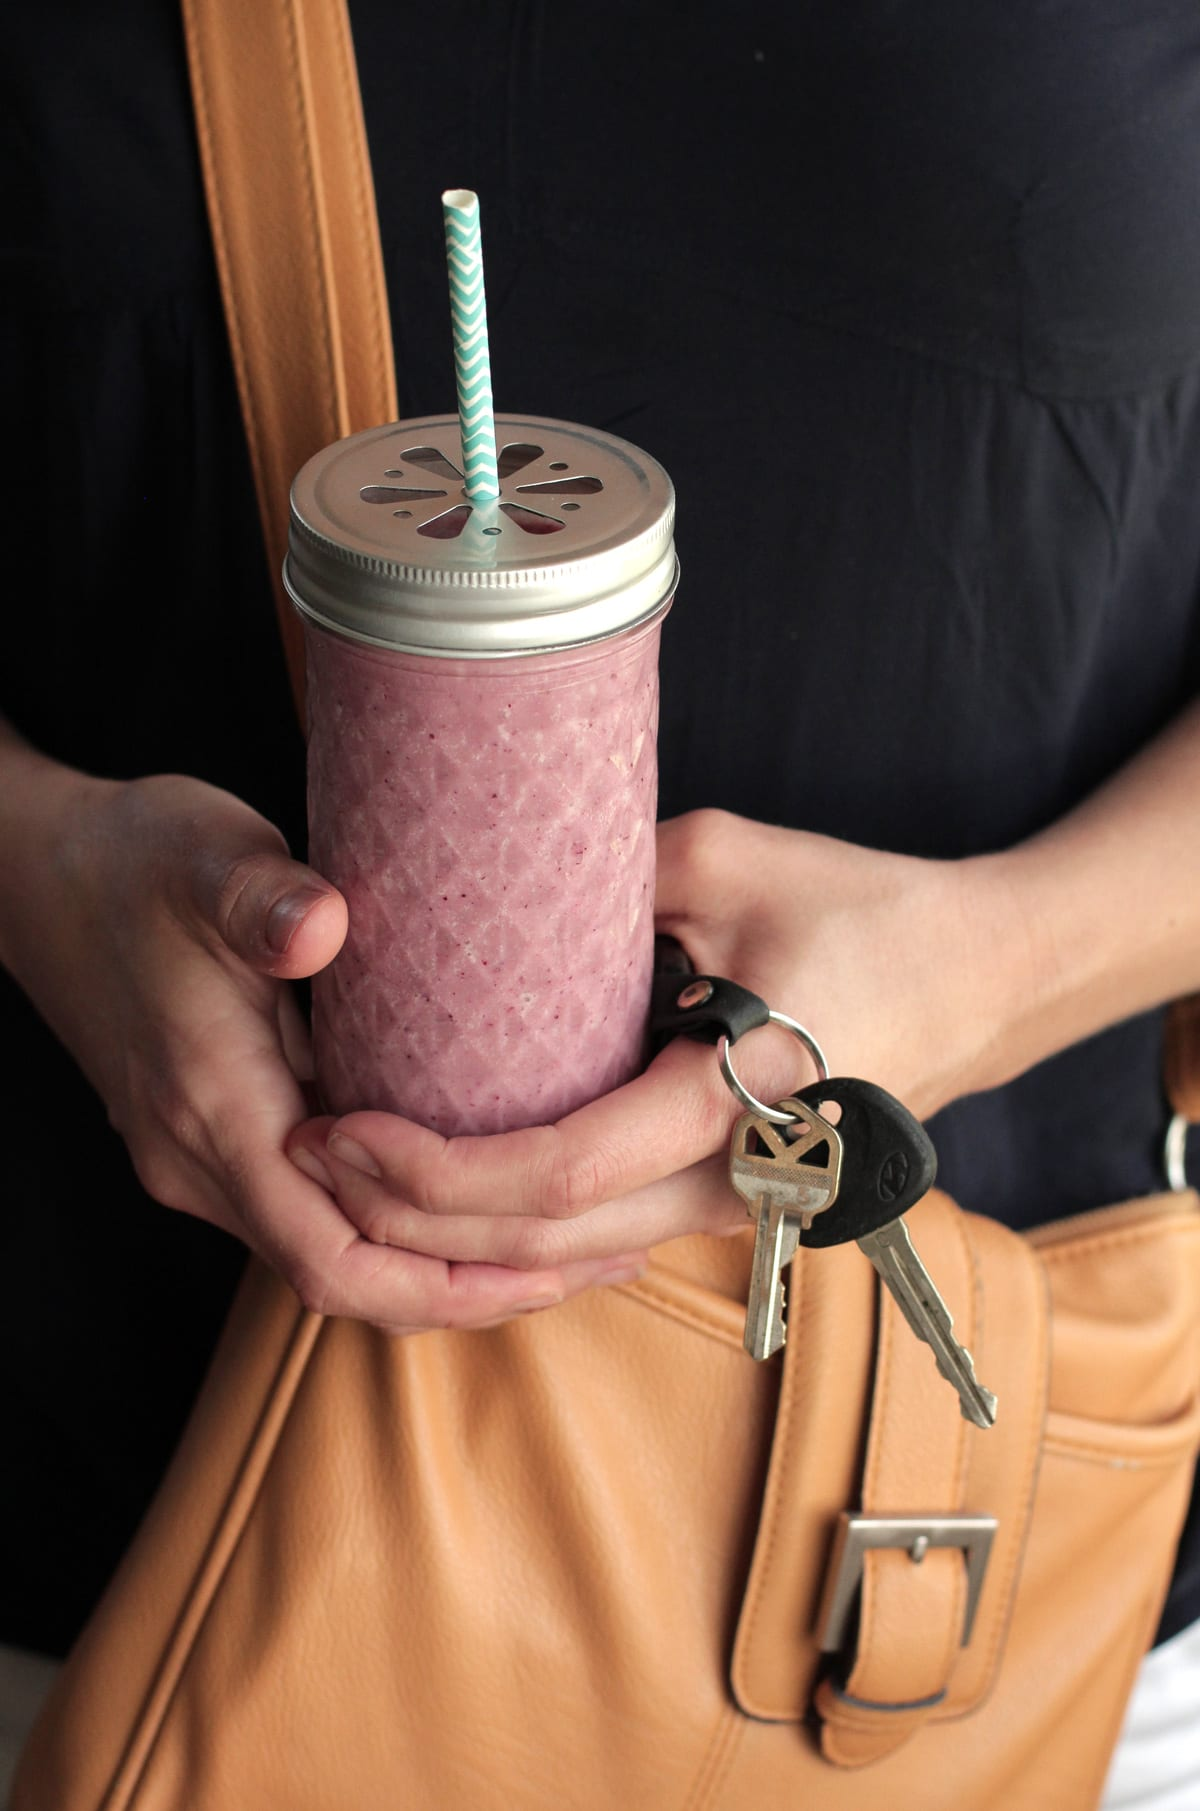 b475be09ac27 DIY Freezer Smoothie Packs and Smoothie Recipes. Save money and time with  homemade freezer packs